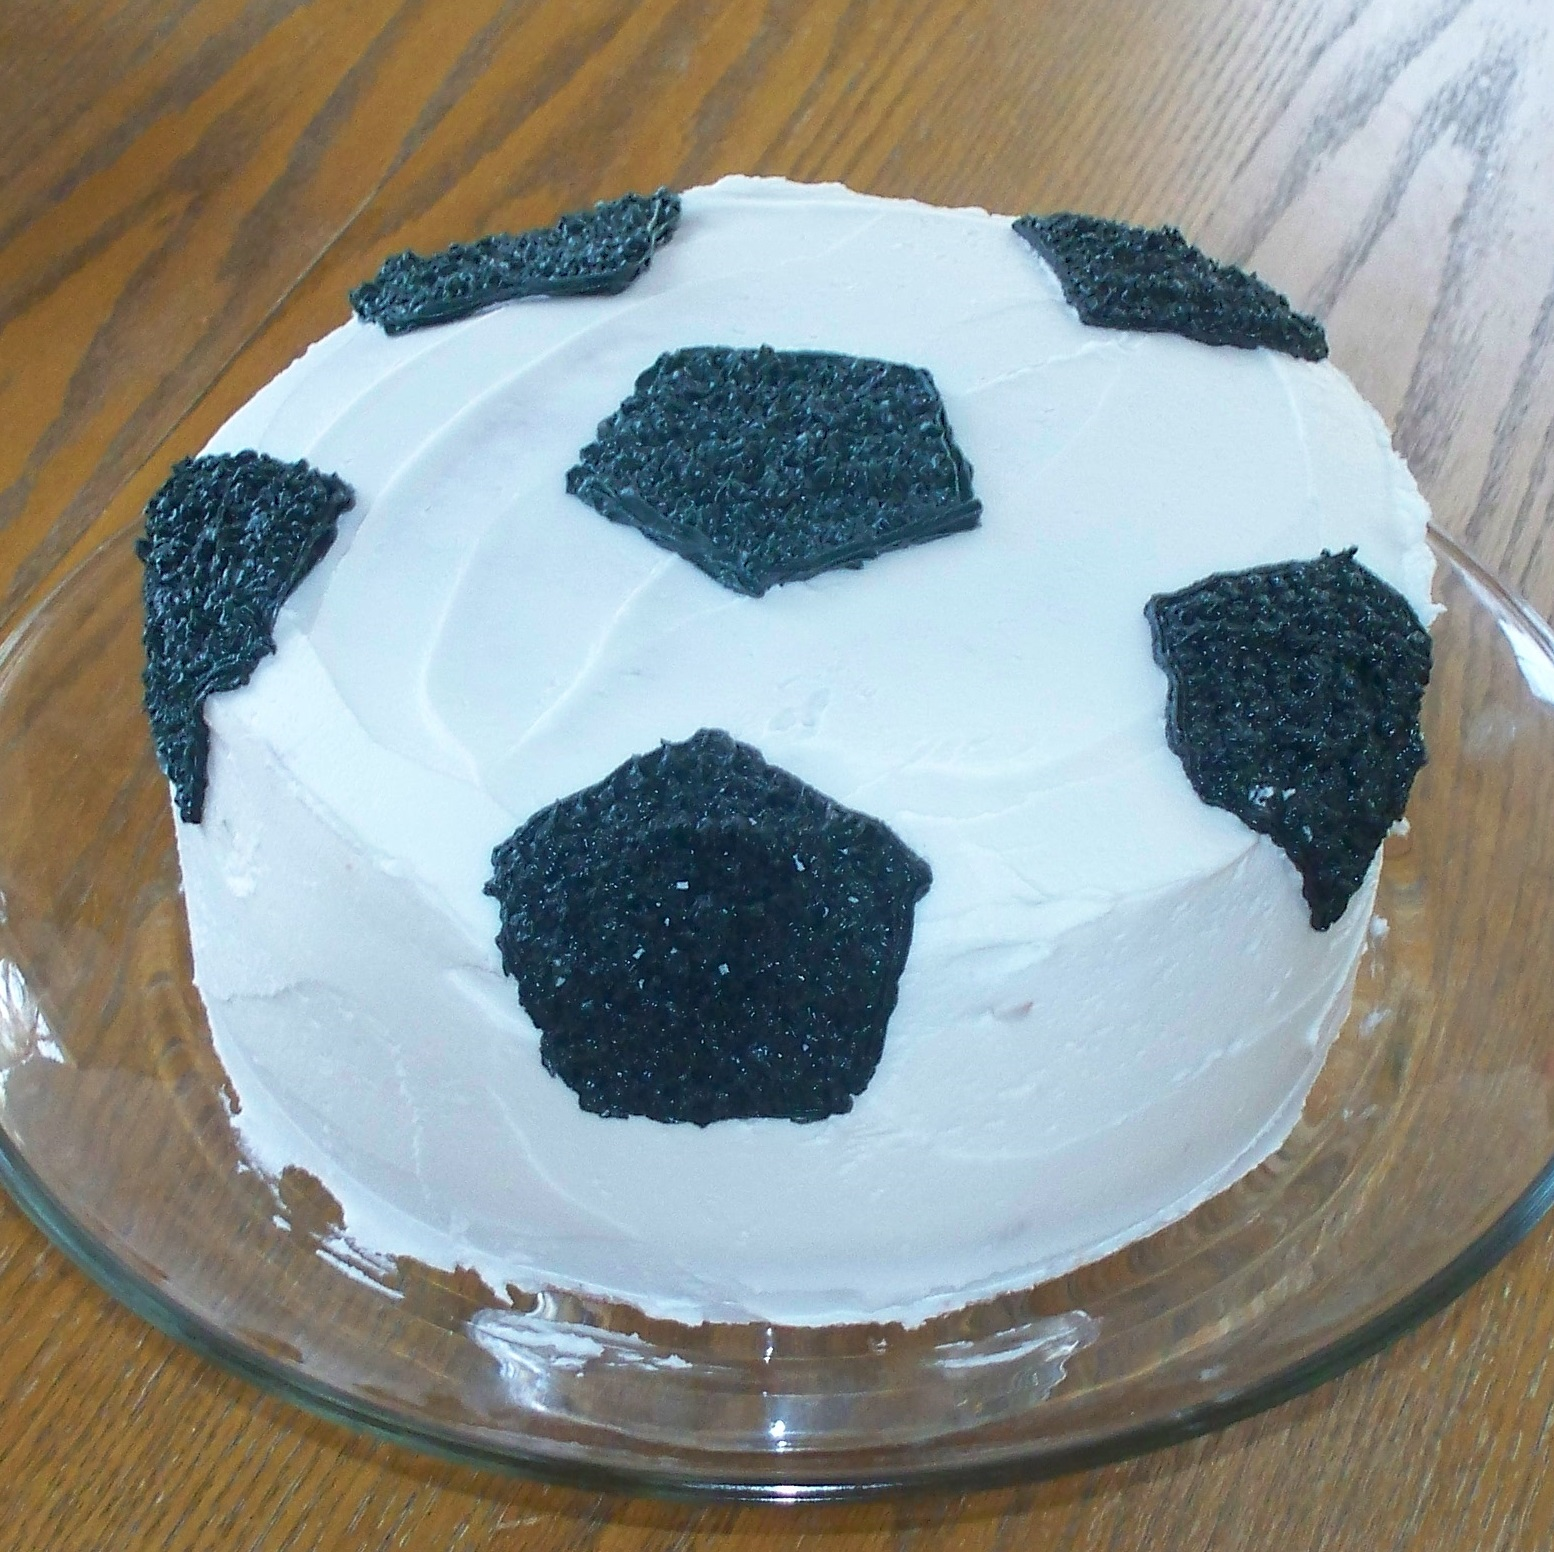 Cake With Ball Design : Make Do: Soccer Ball Cake